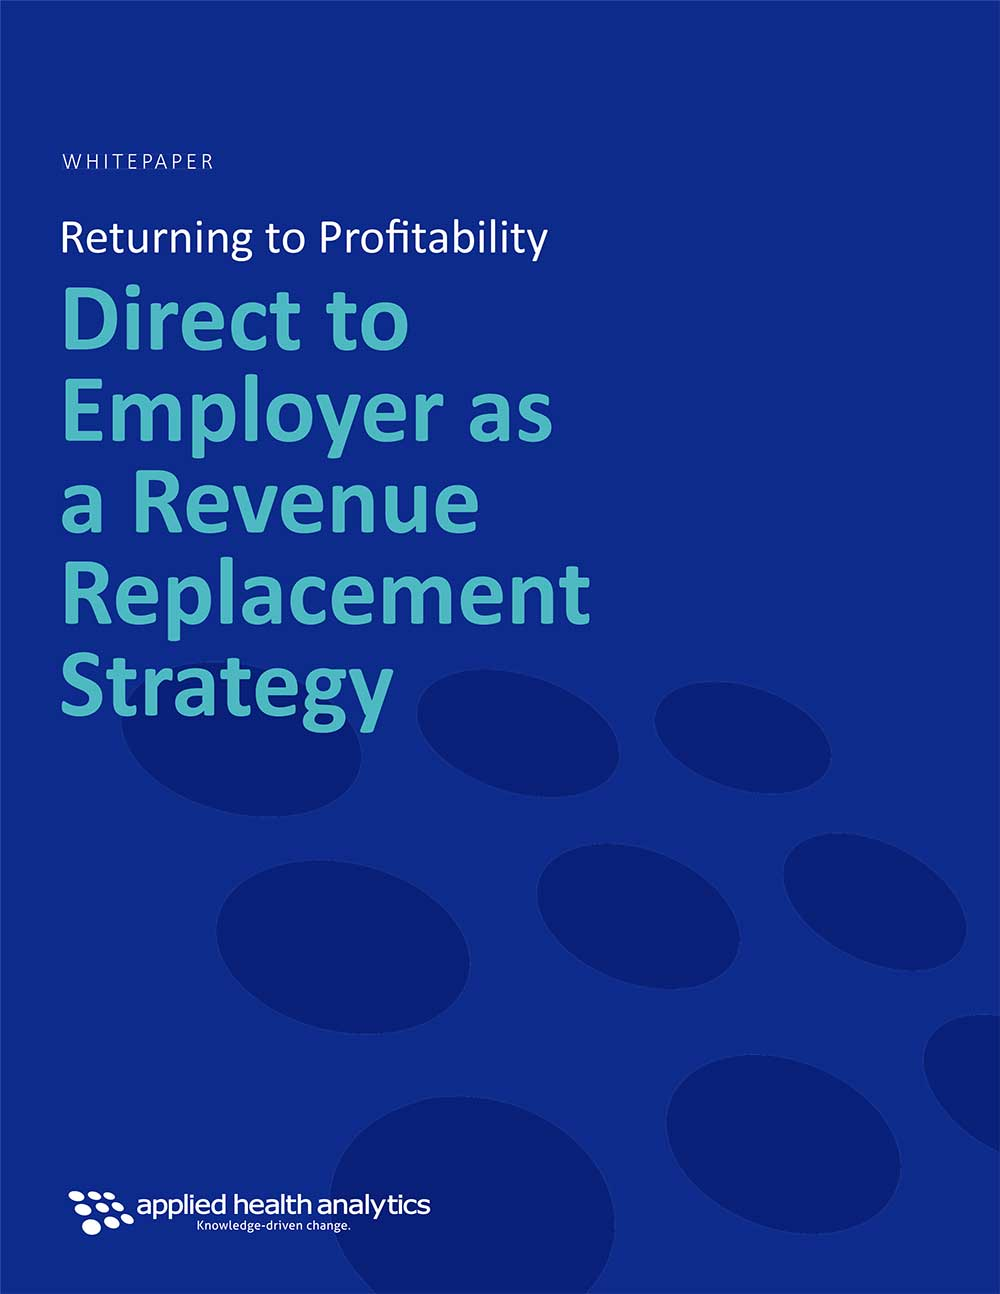 Applied Health Analytics Whitepaper_Return to Profitability Direct to Employer as a Revenue Replacement Strategy